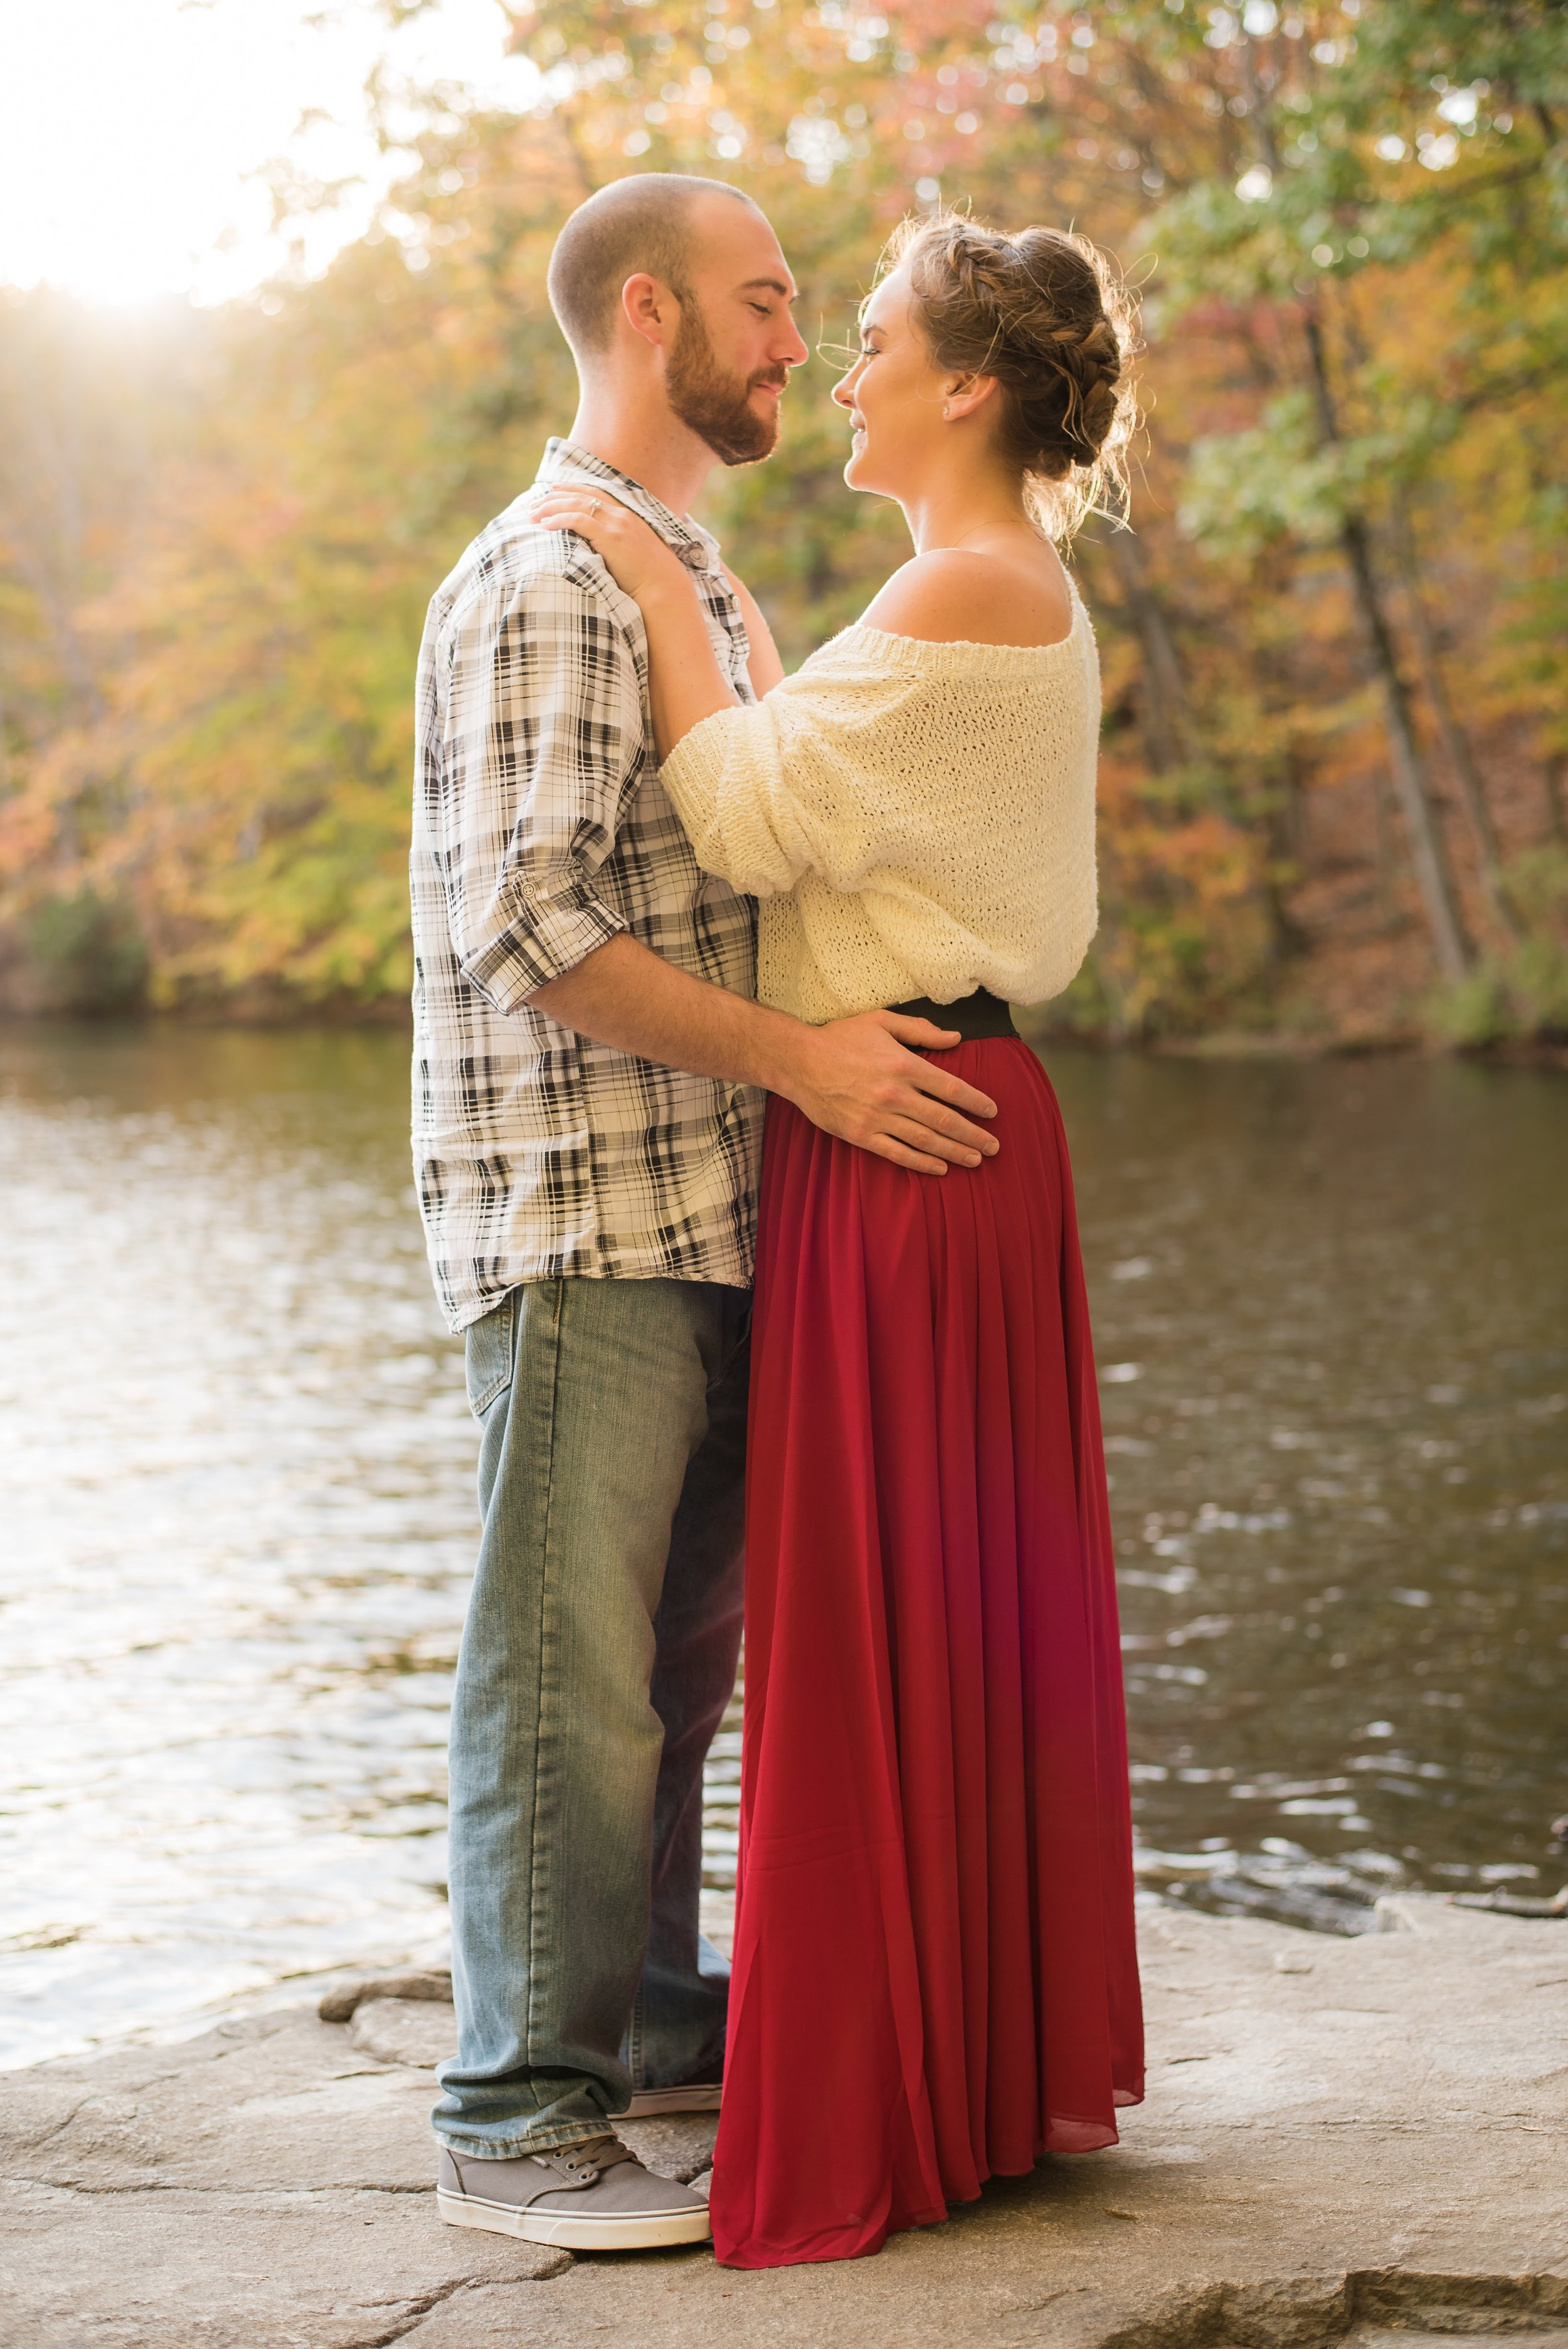 _KLE5132Knothe Engagement_.jpg